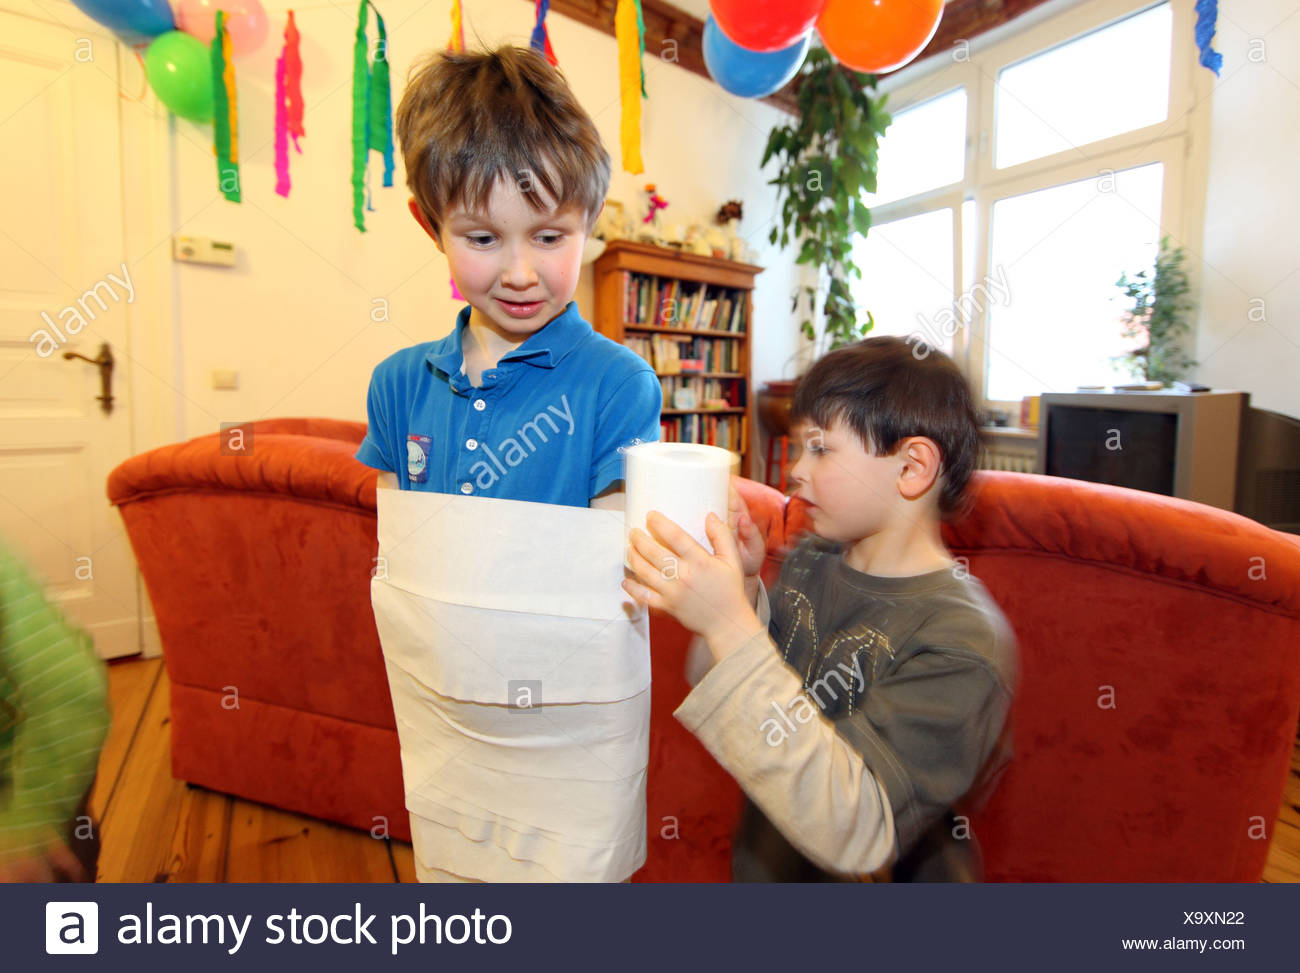 Berlin, Germany, boy wrapped in toilet paper - Stock Image